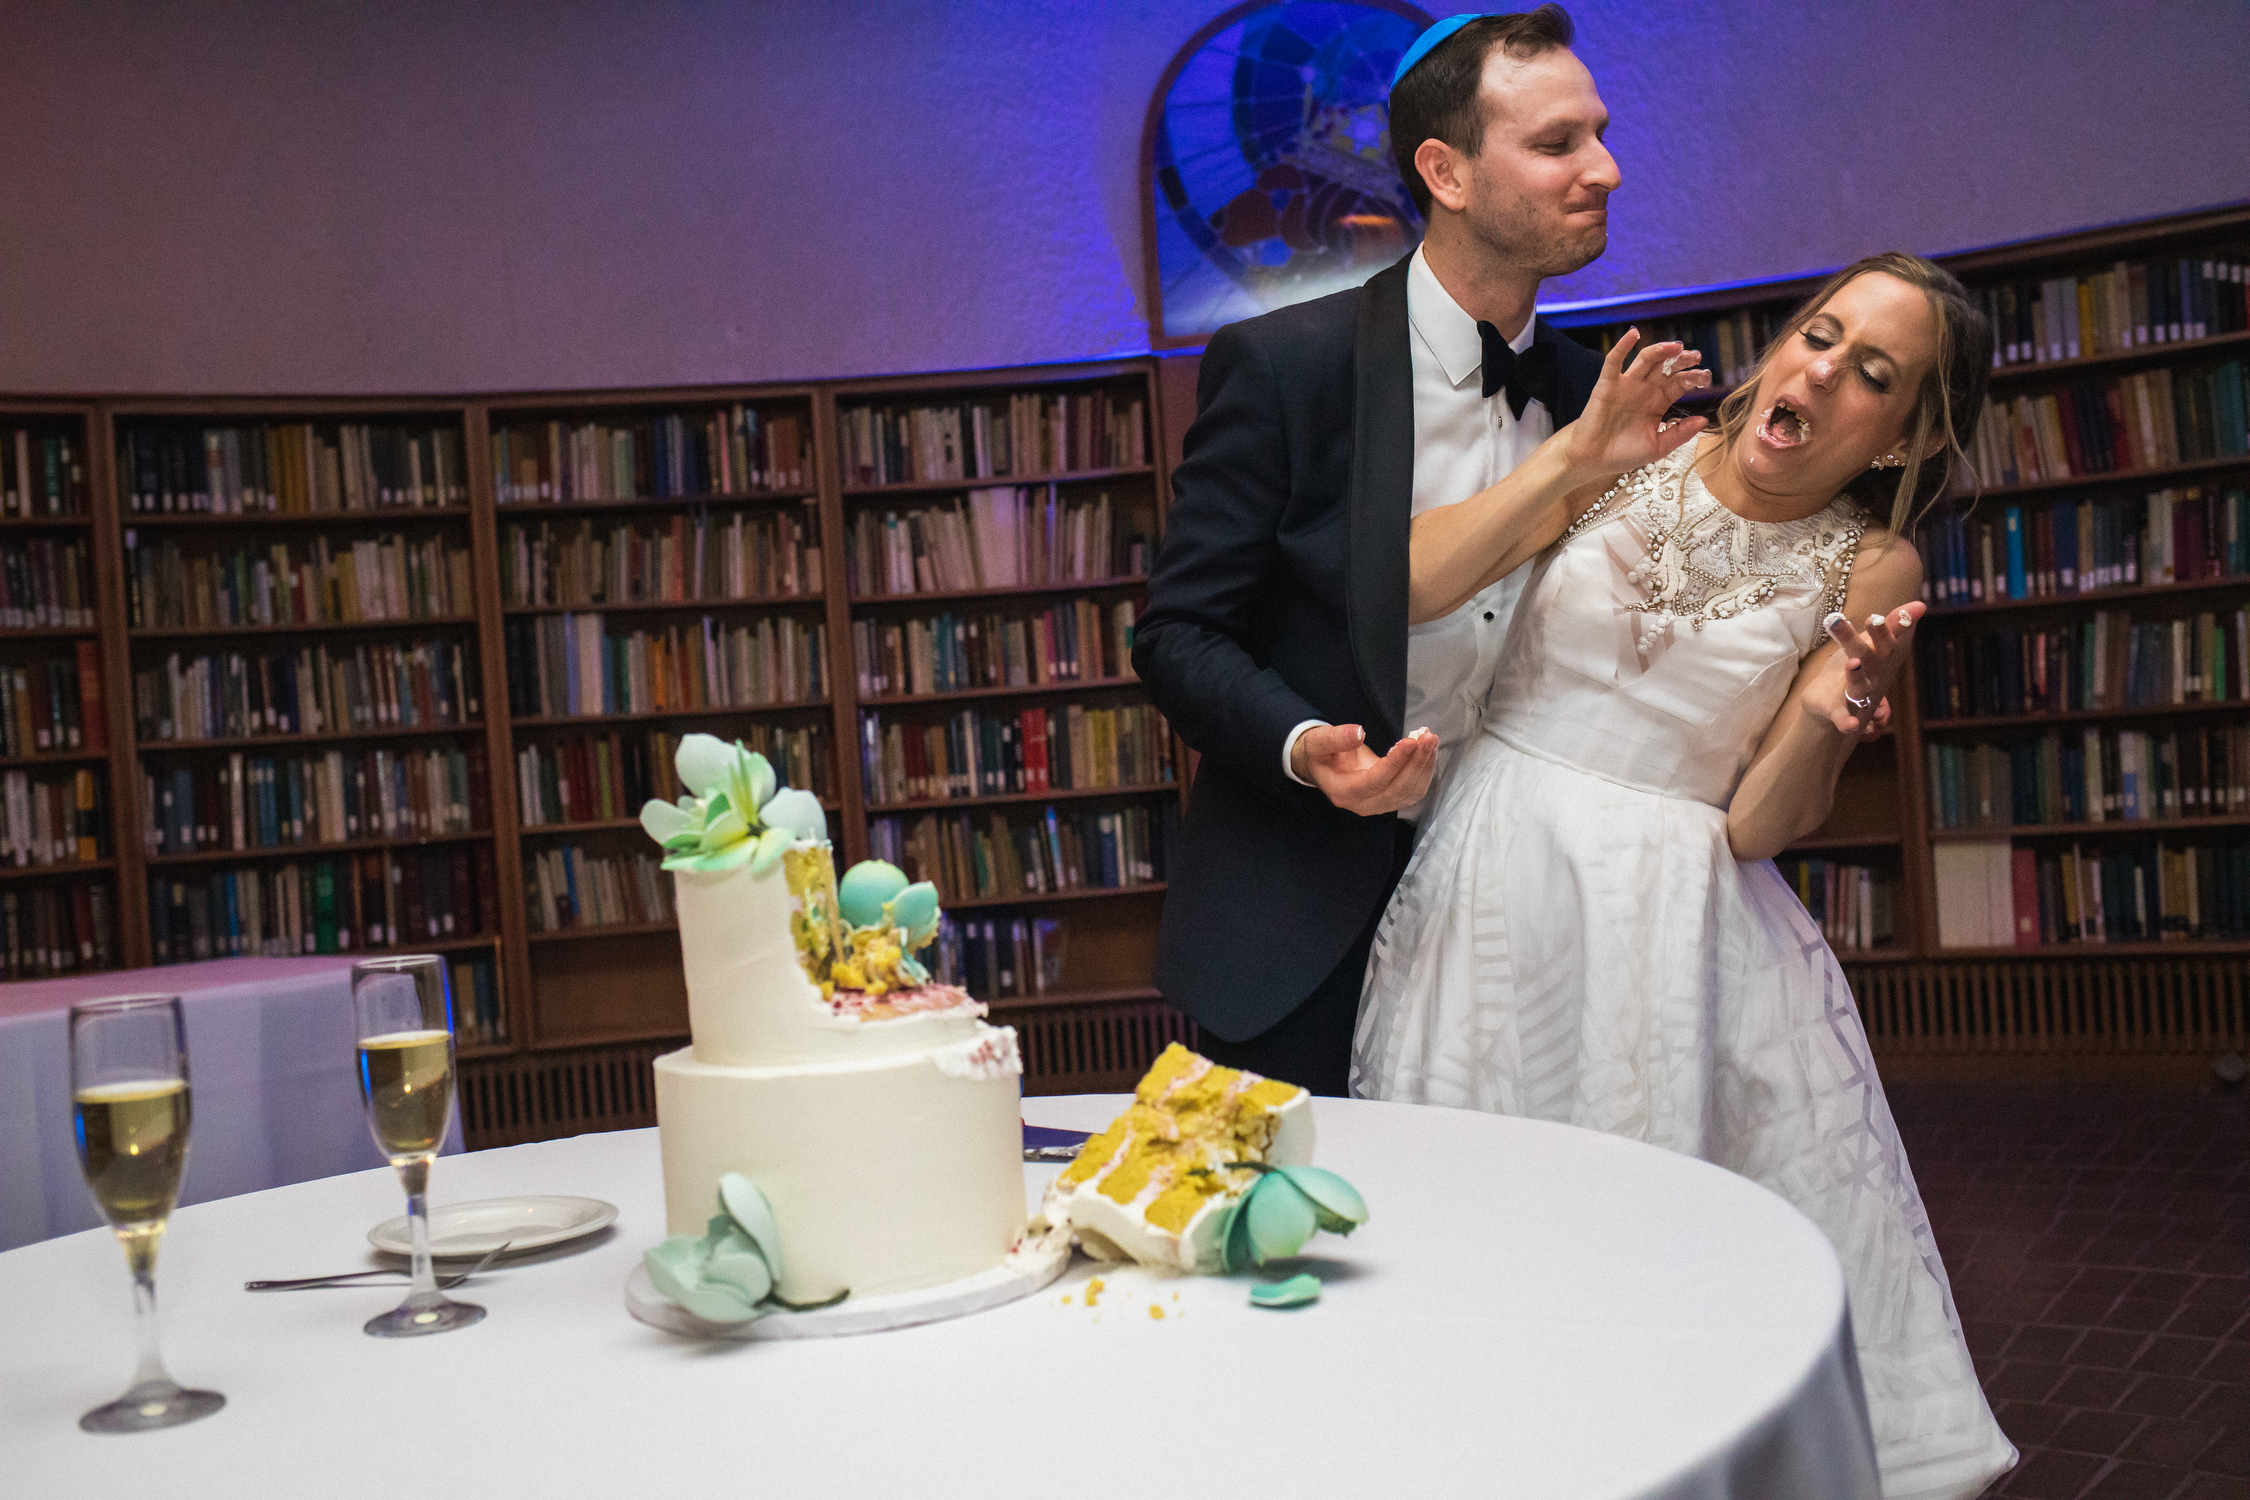 Cute couple cake shot during wedding by Annie Bang of Los Angeles